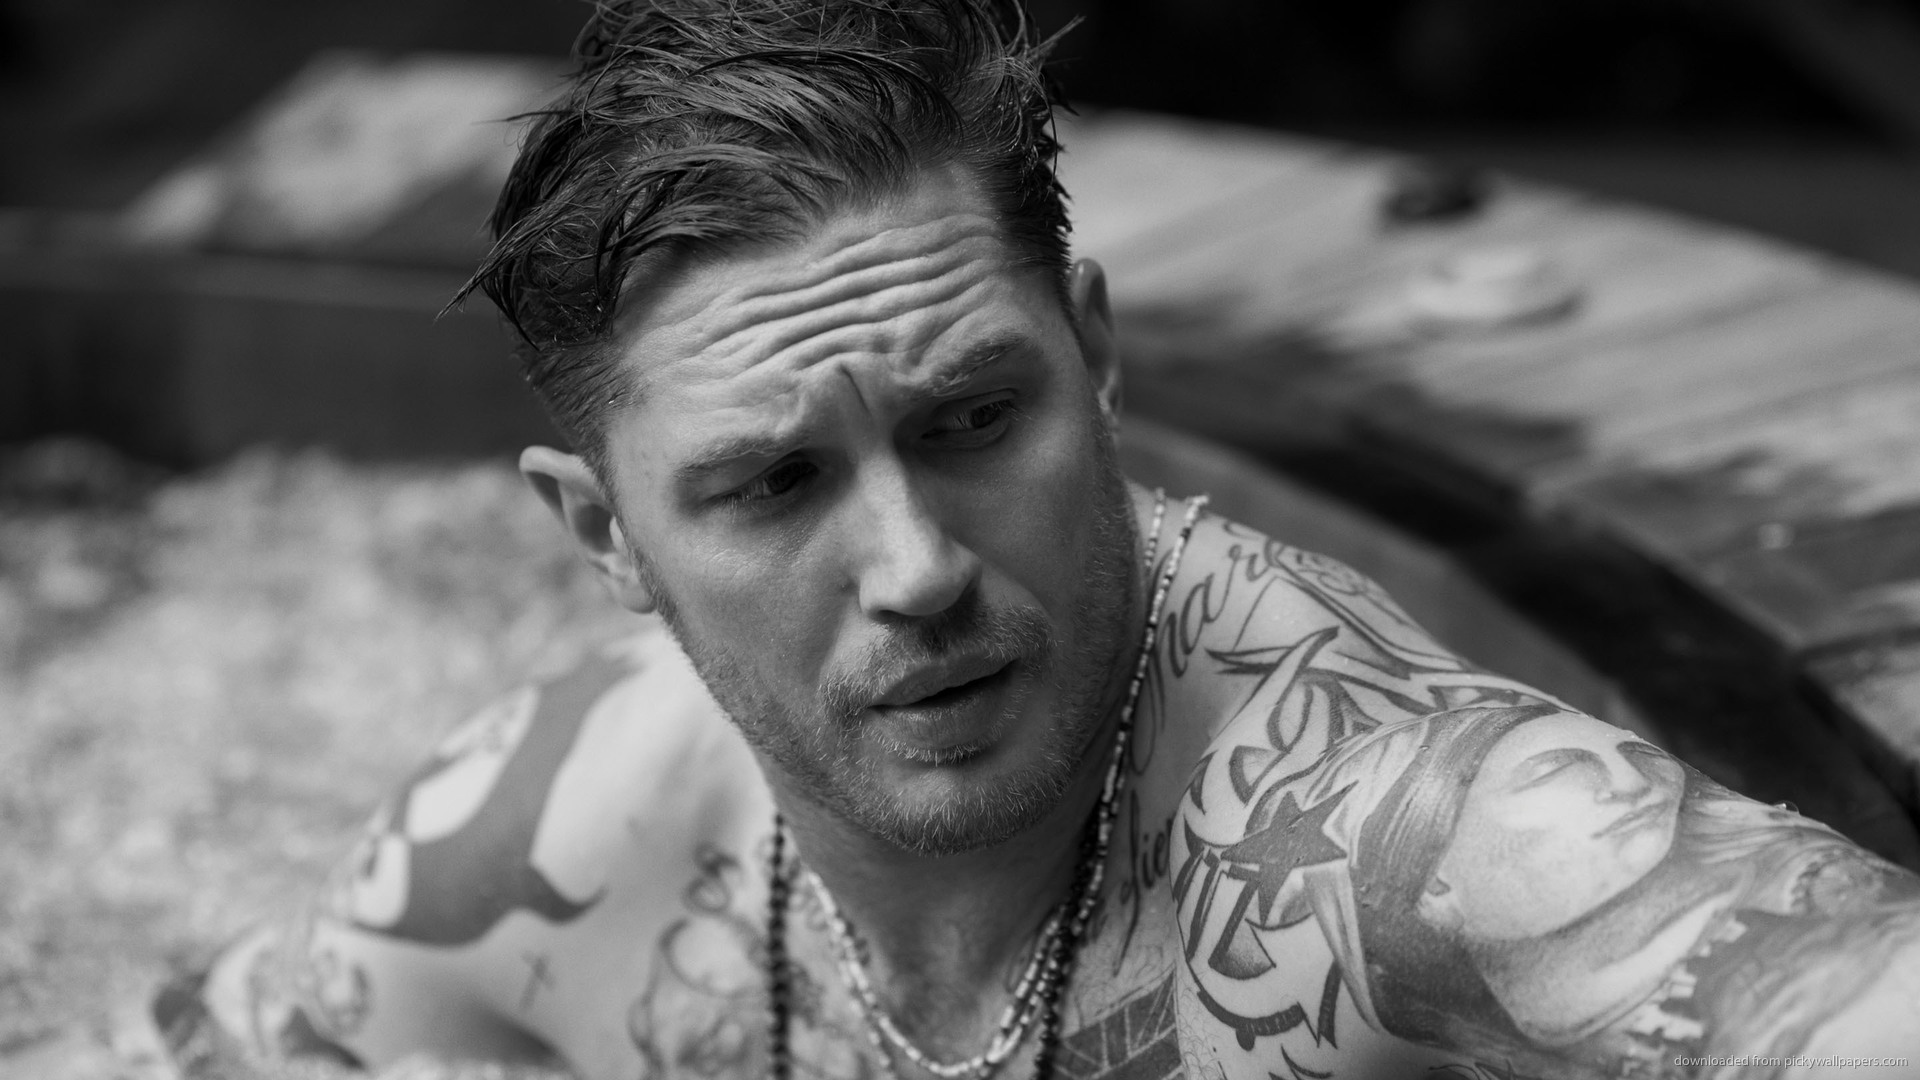 Tom Hardy Tattoos 2014 HD Wallpaper Background Images 1920x1080